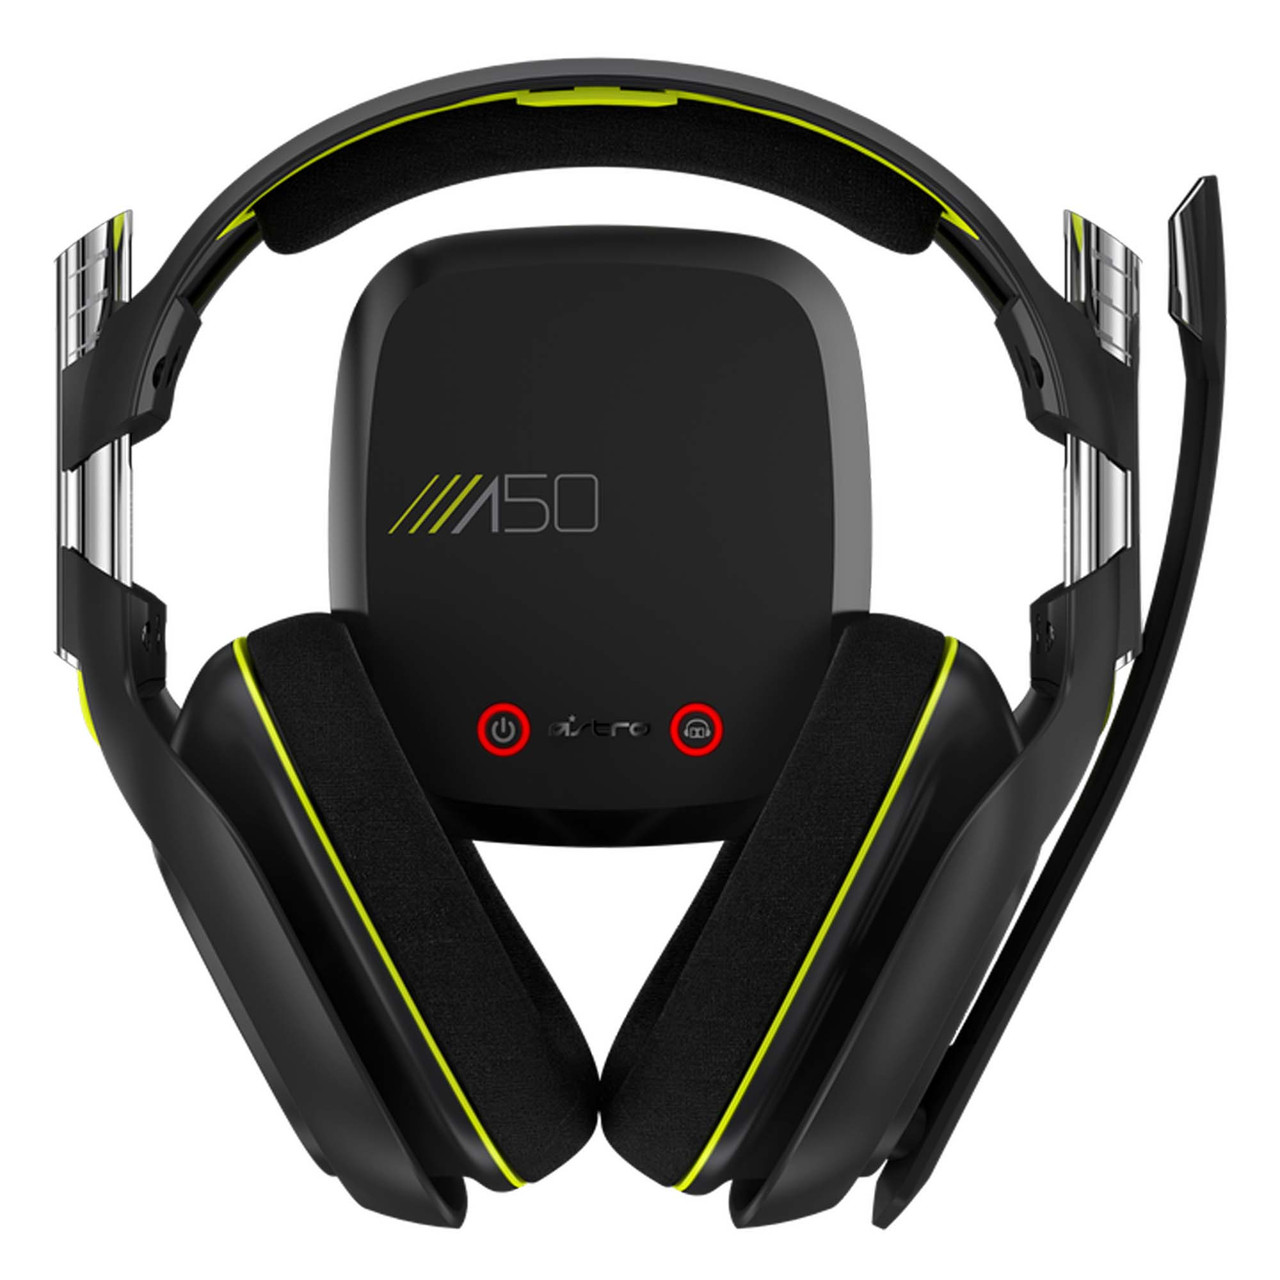 Astro A50 Xbox One Wireless Headset review